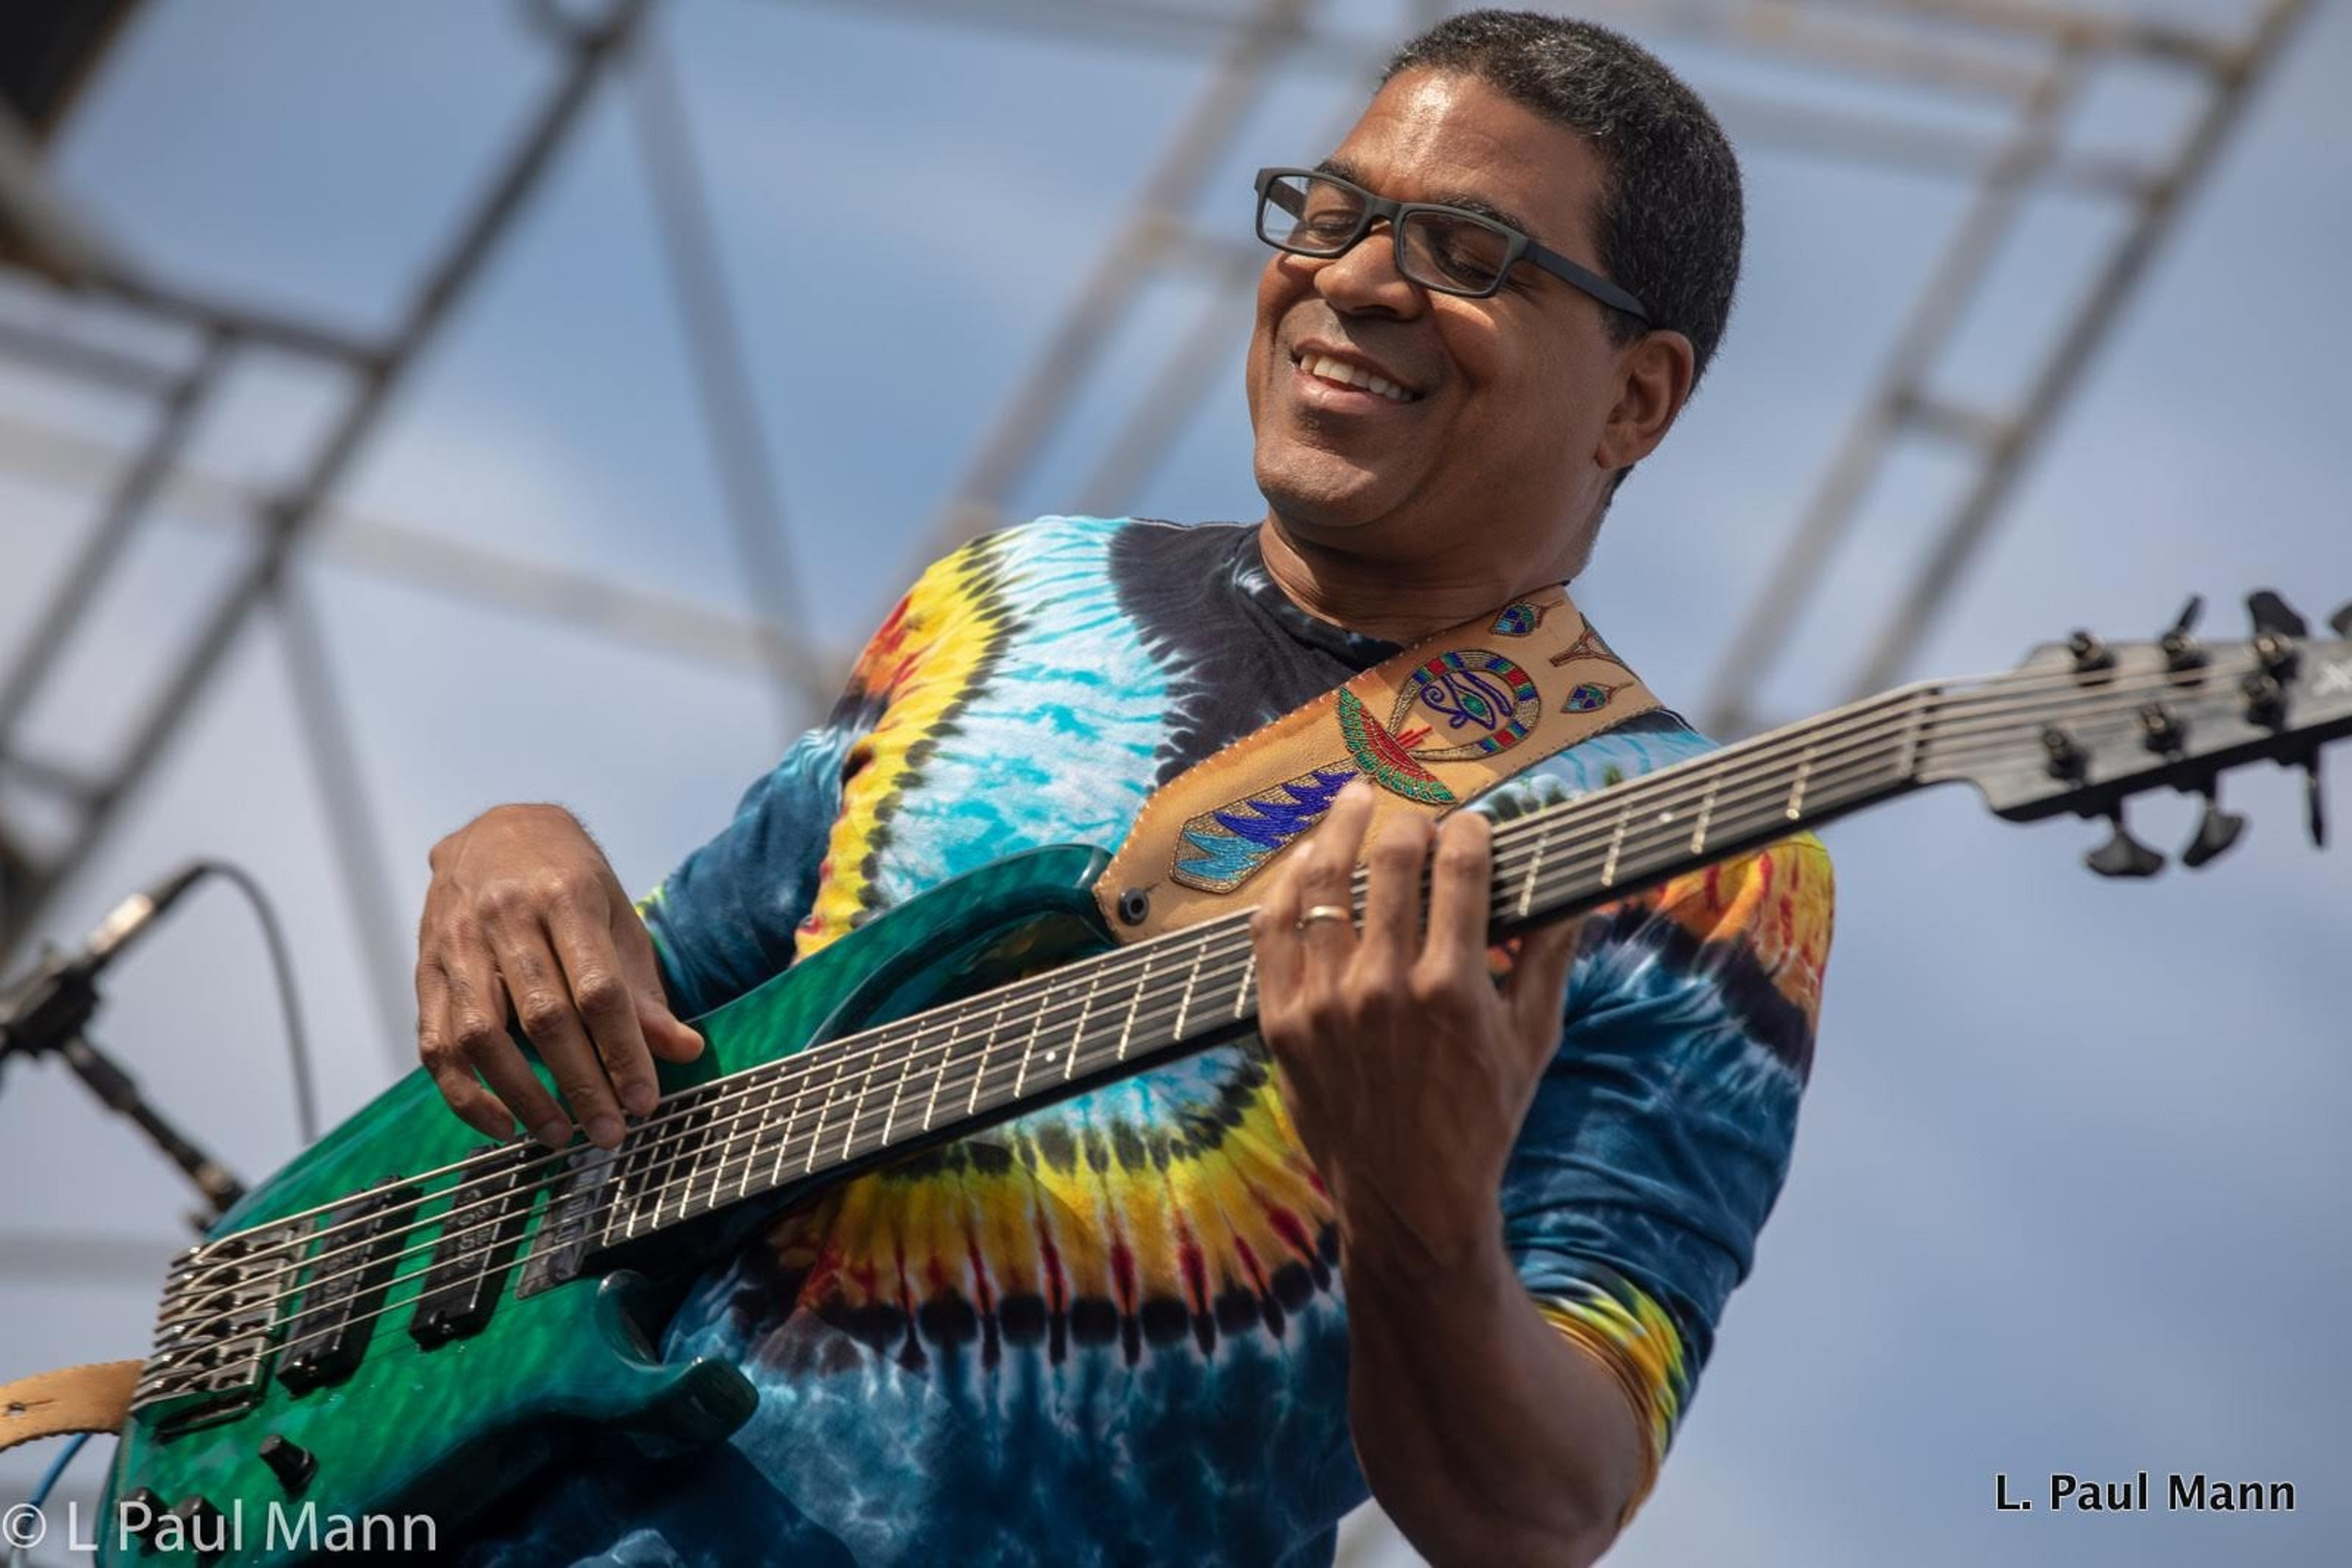 Oteil will have some very special guests @ Lockn' 2019